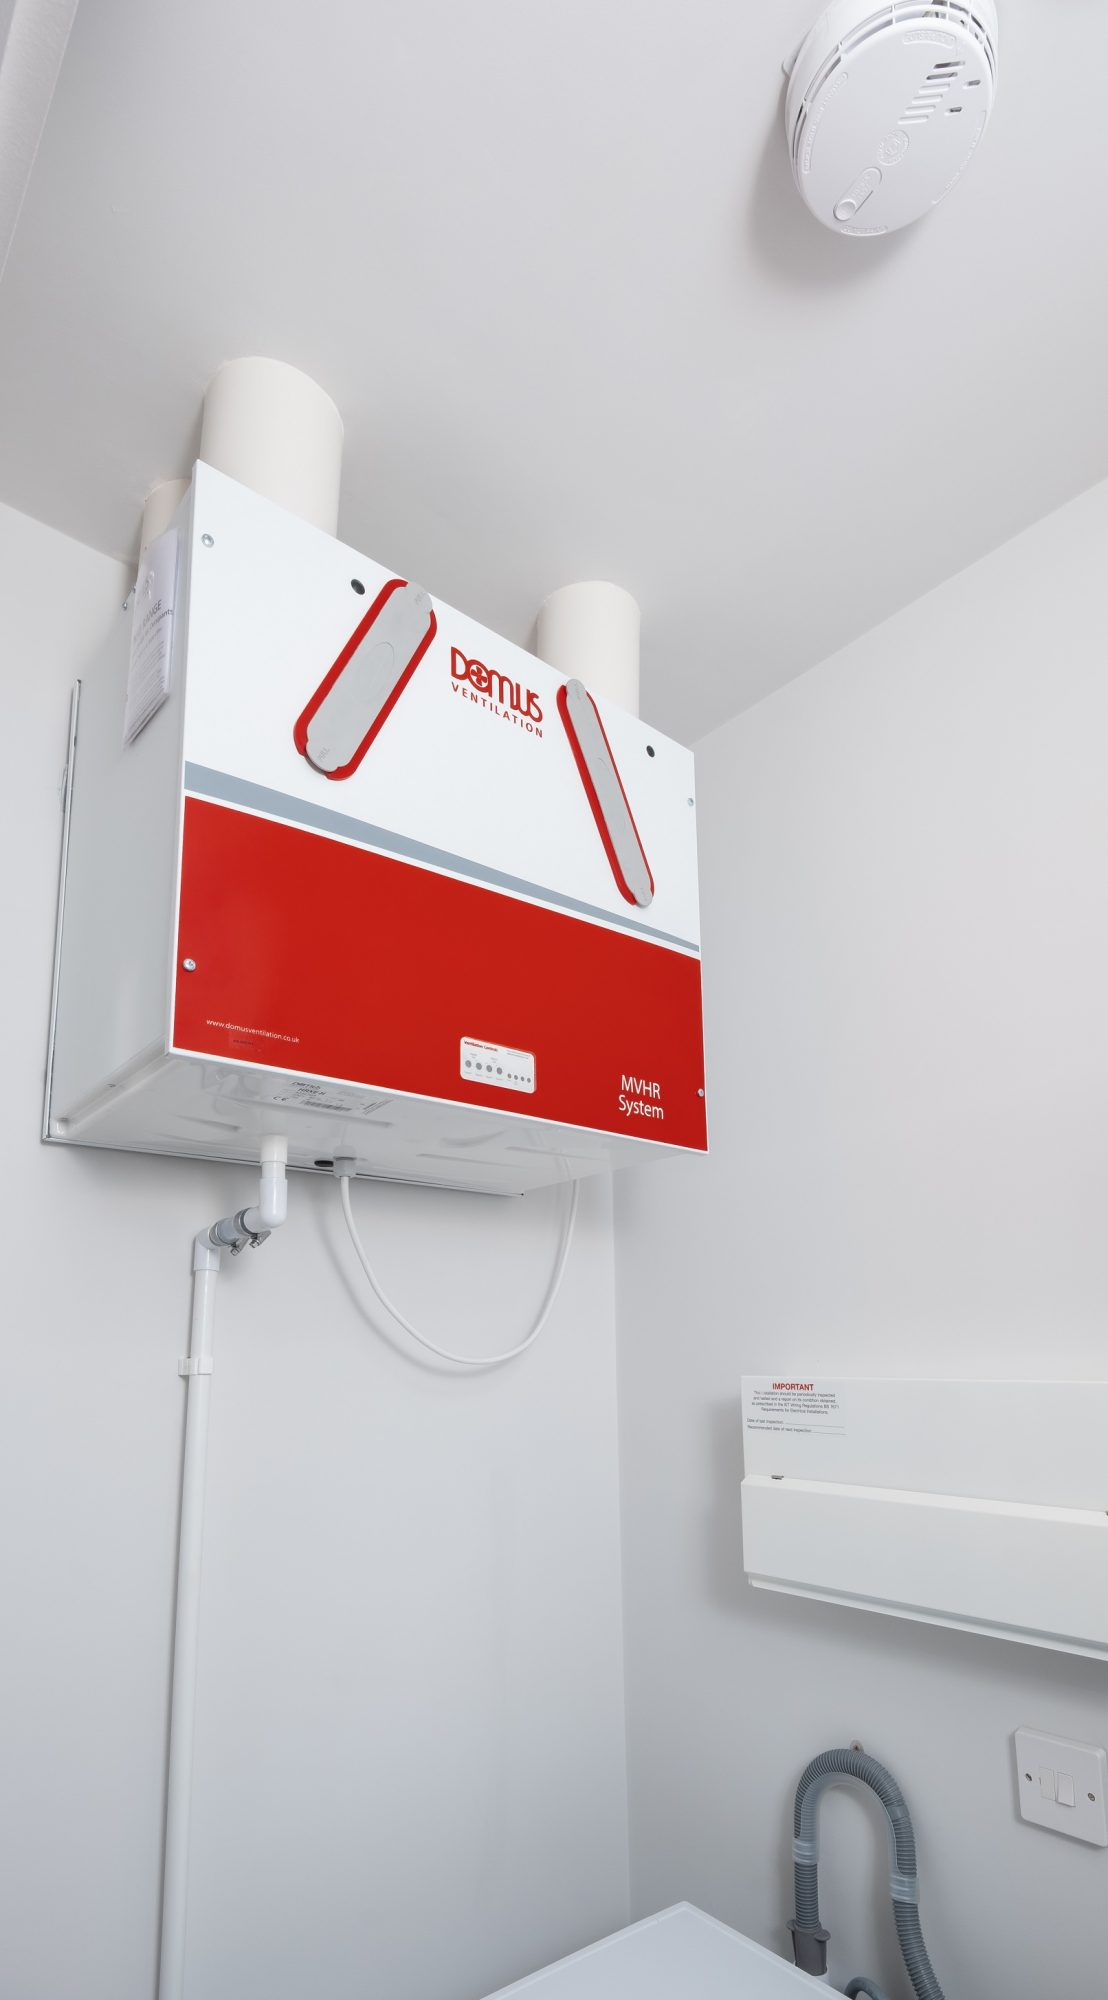 Domus Ventilation MVHR System Choice For Affordable Homes In London